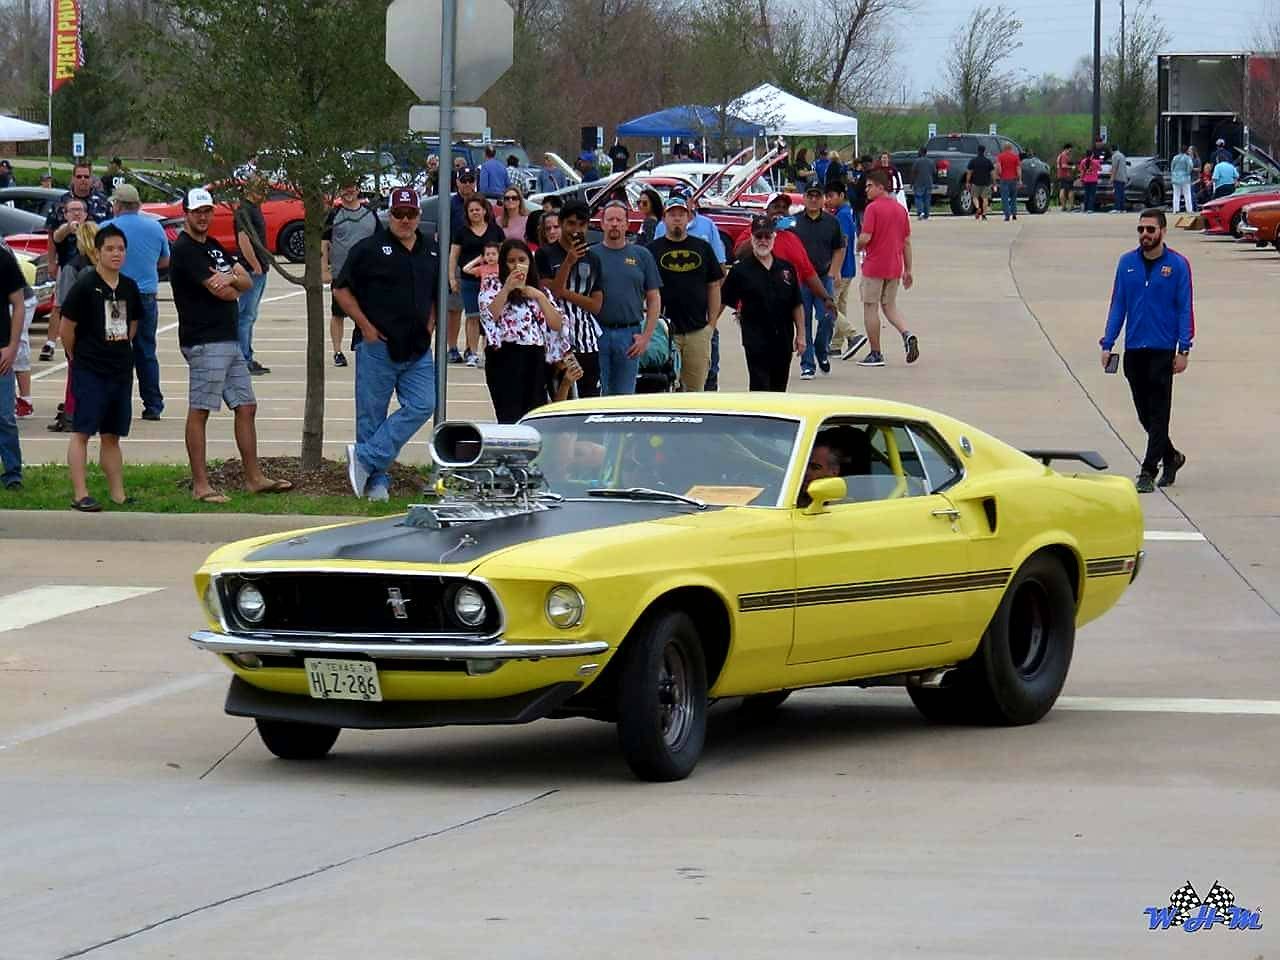 Tom Anziano - Houston, TX - 1969 Ford Mustang